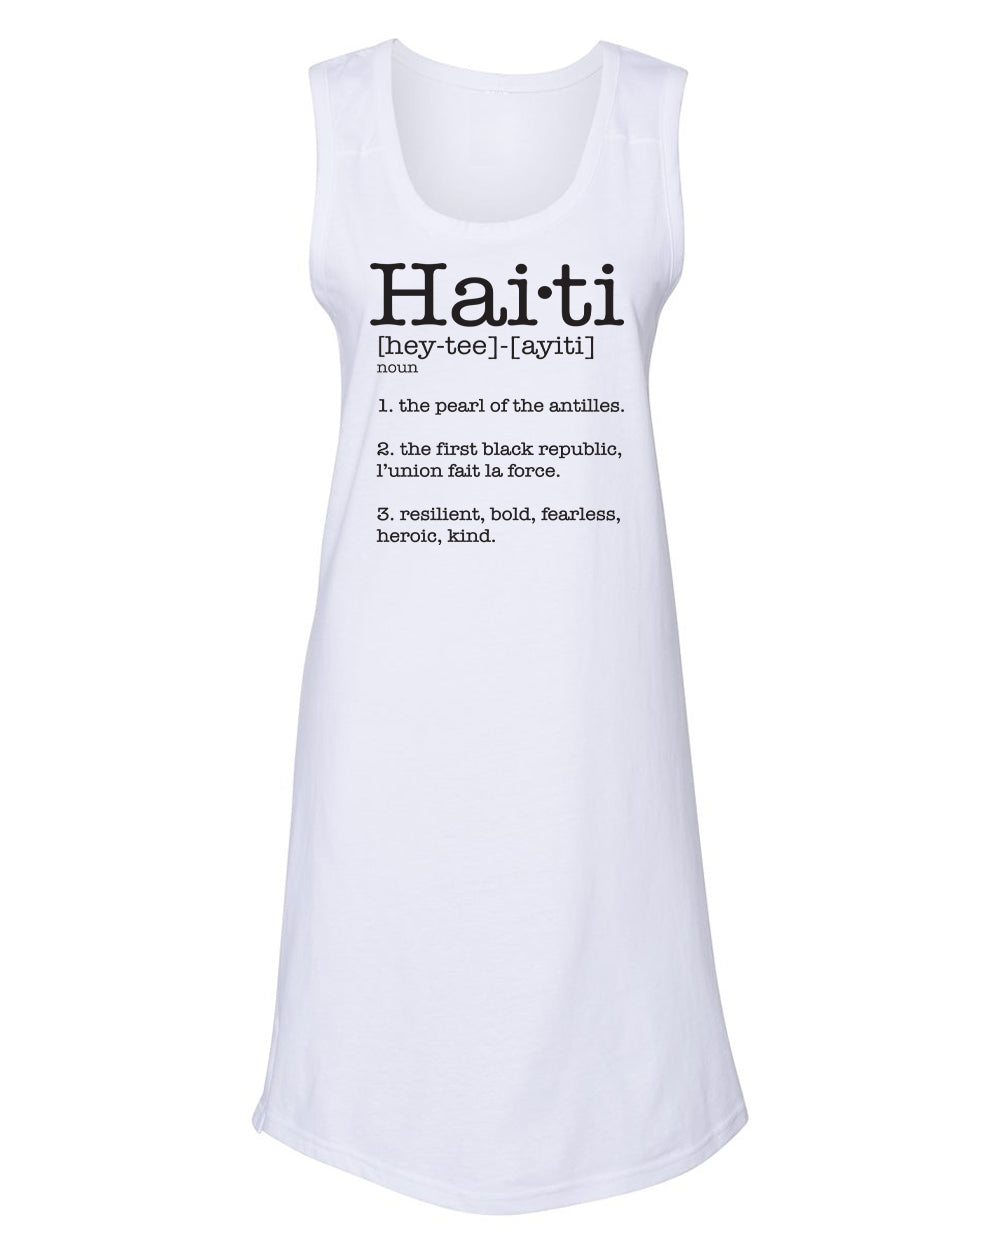 HAITI DEFINITION-(JERSEY TANK DRESS)